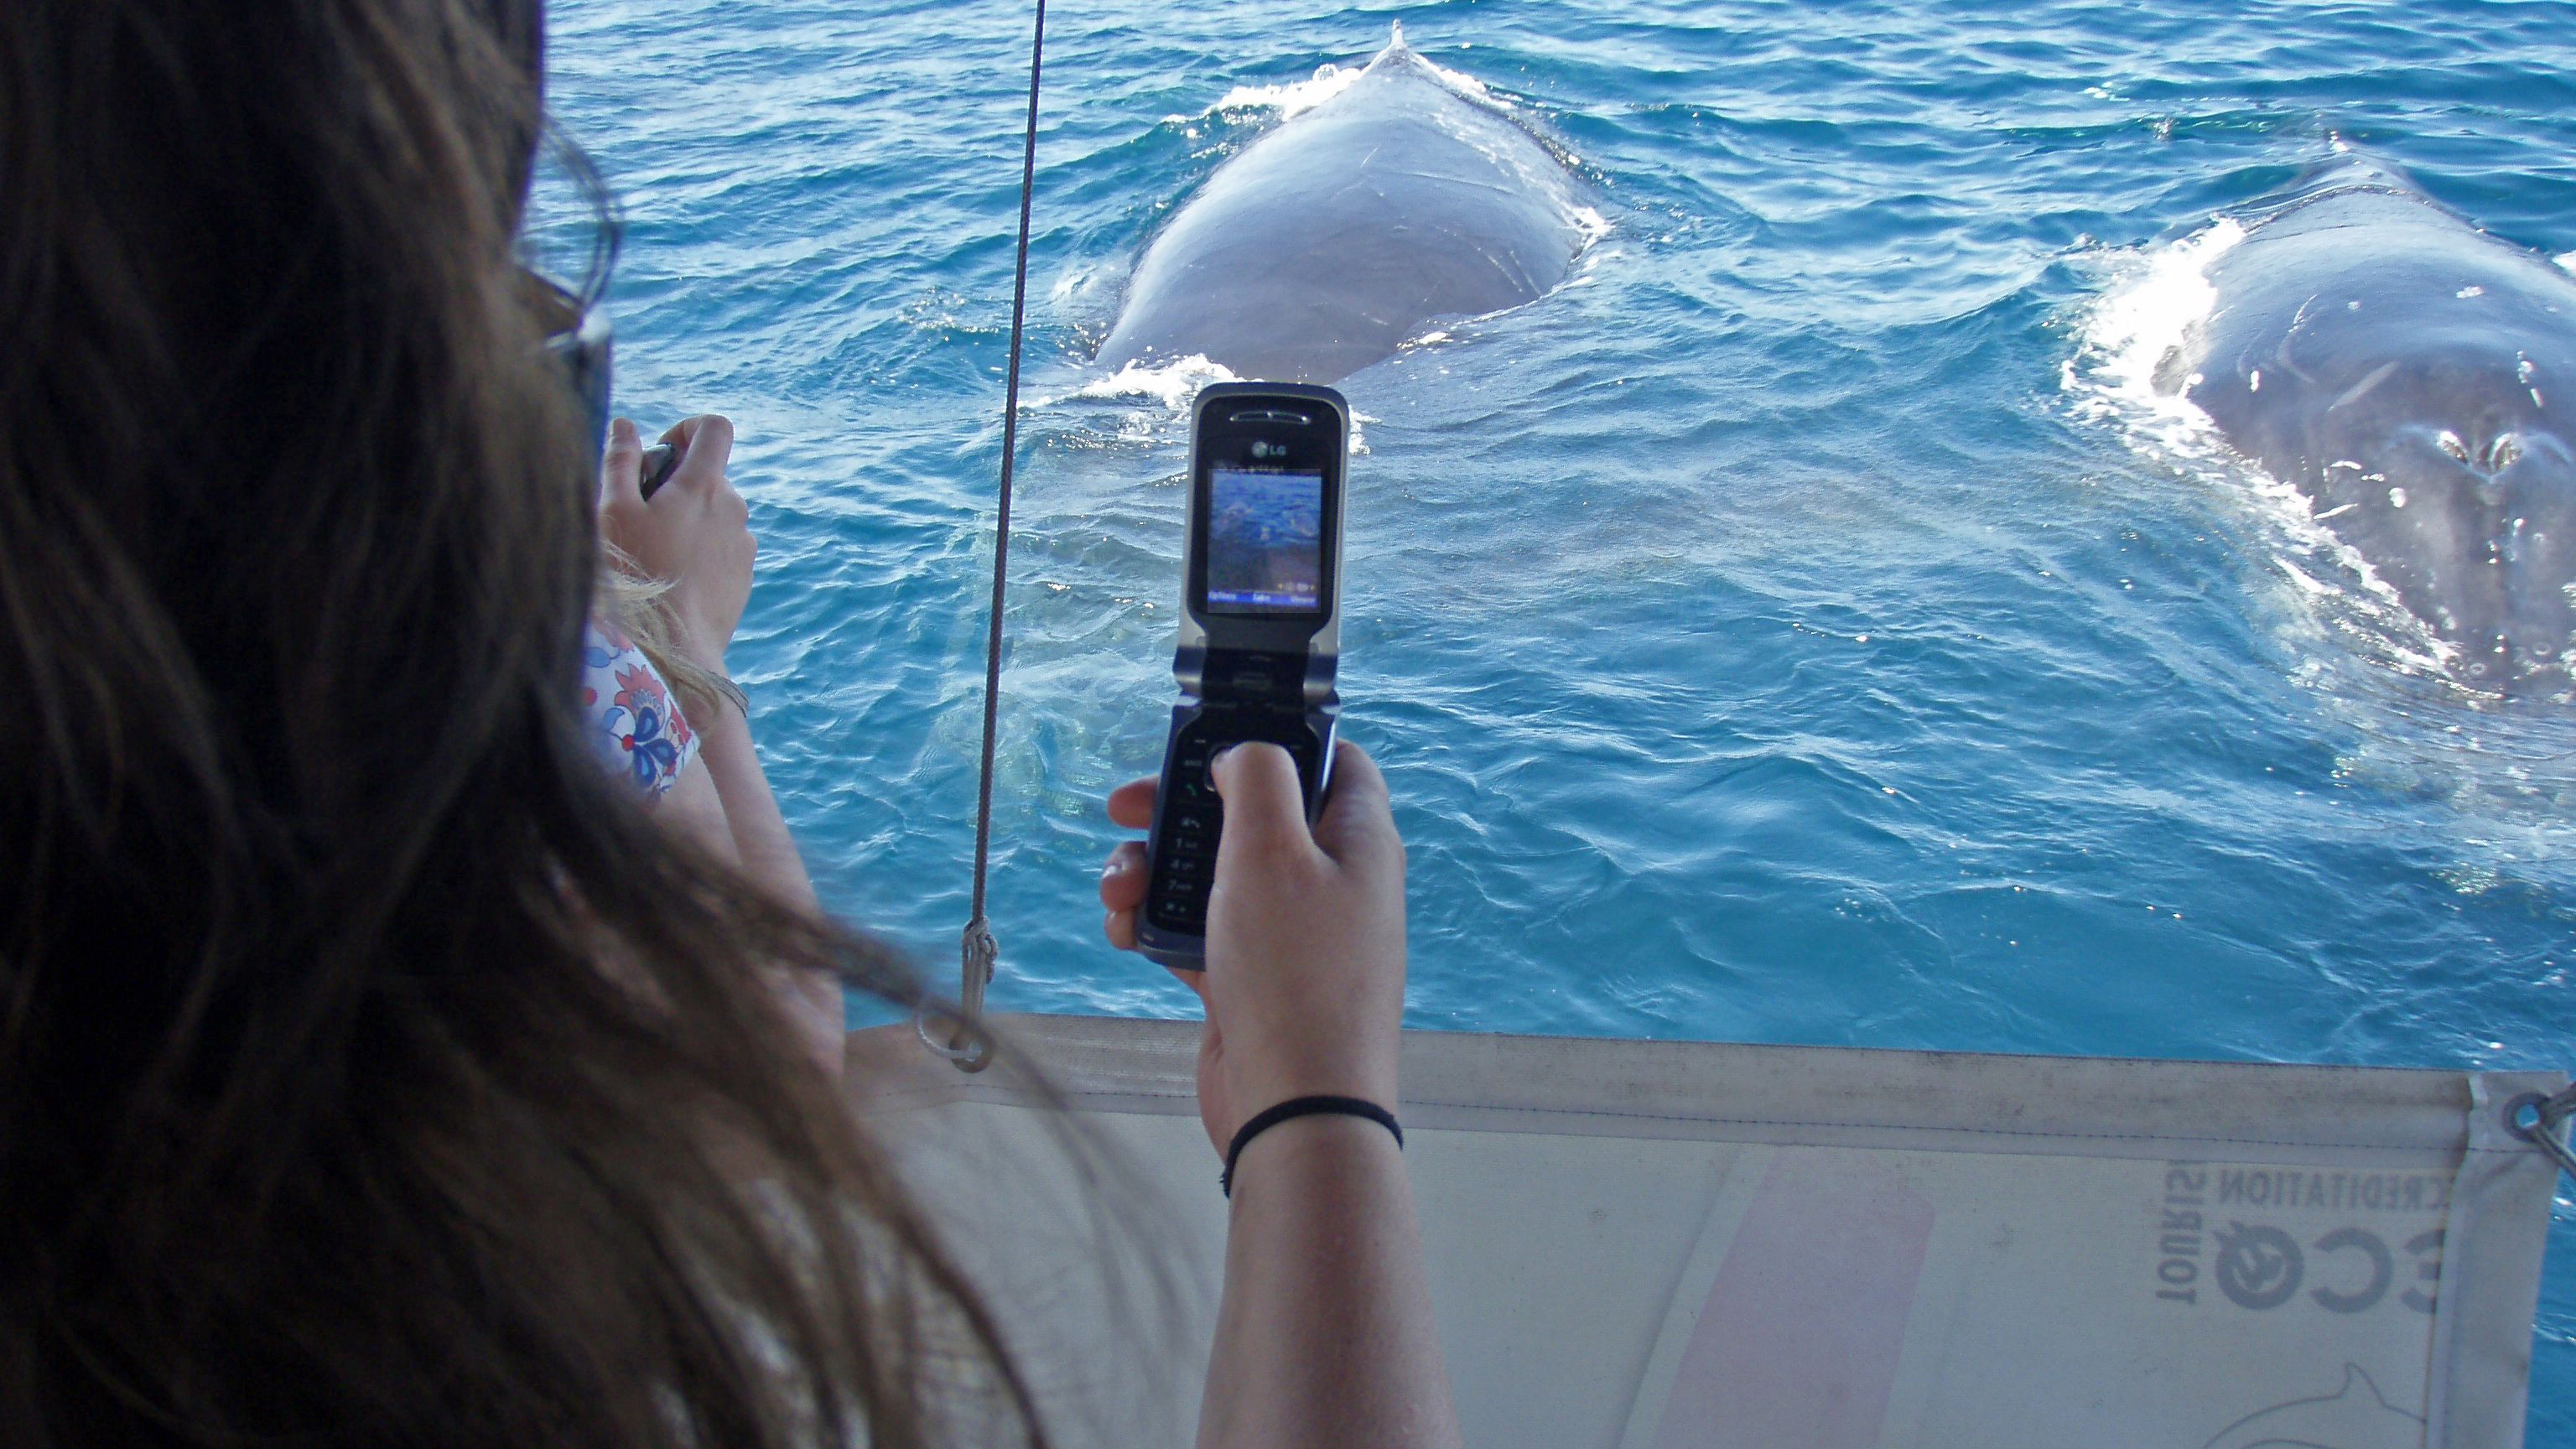 woamn takes photos of dolphins from boat in Newcastle